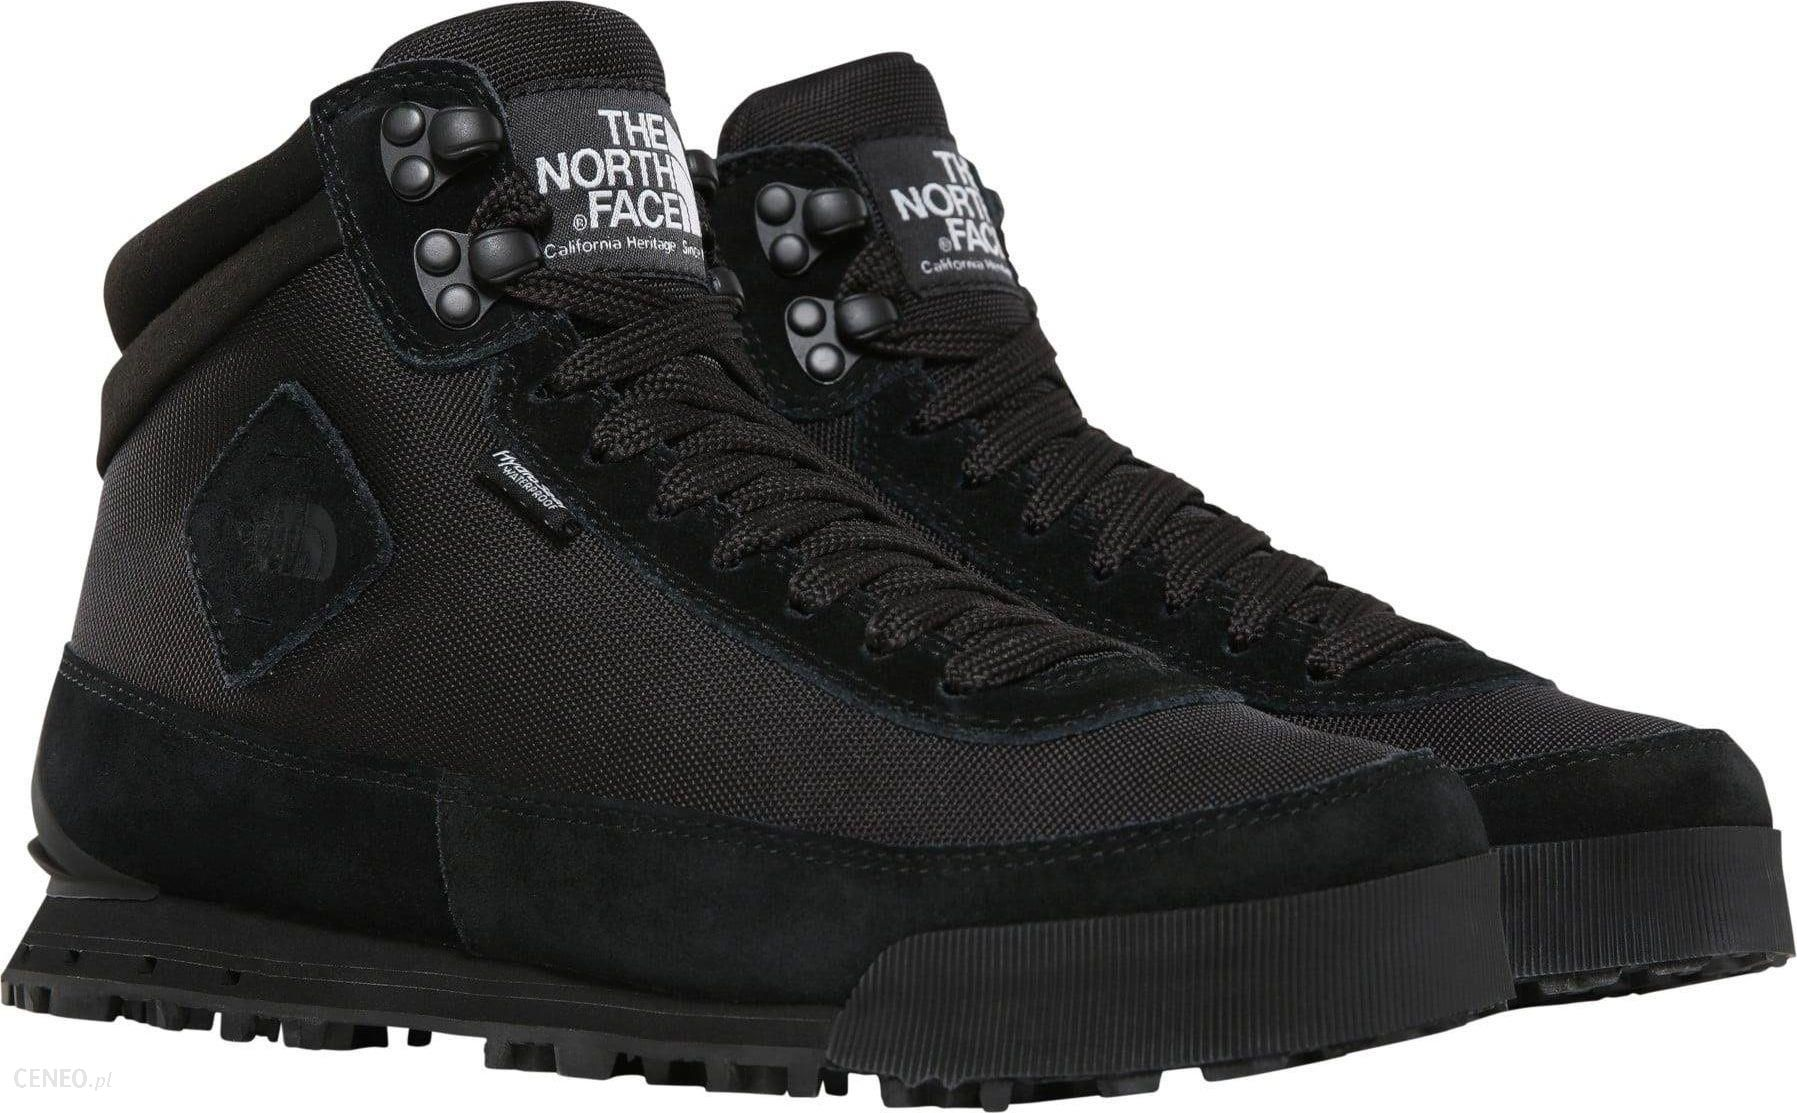 The North Face Buty zimowe The North Face Back to Berkeley II T0A1MFKX7 37!